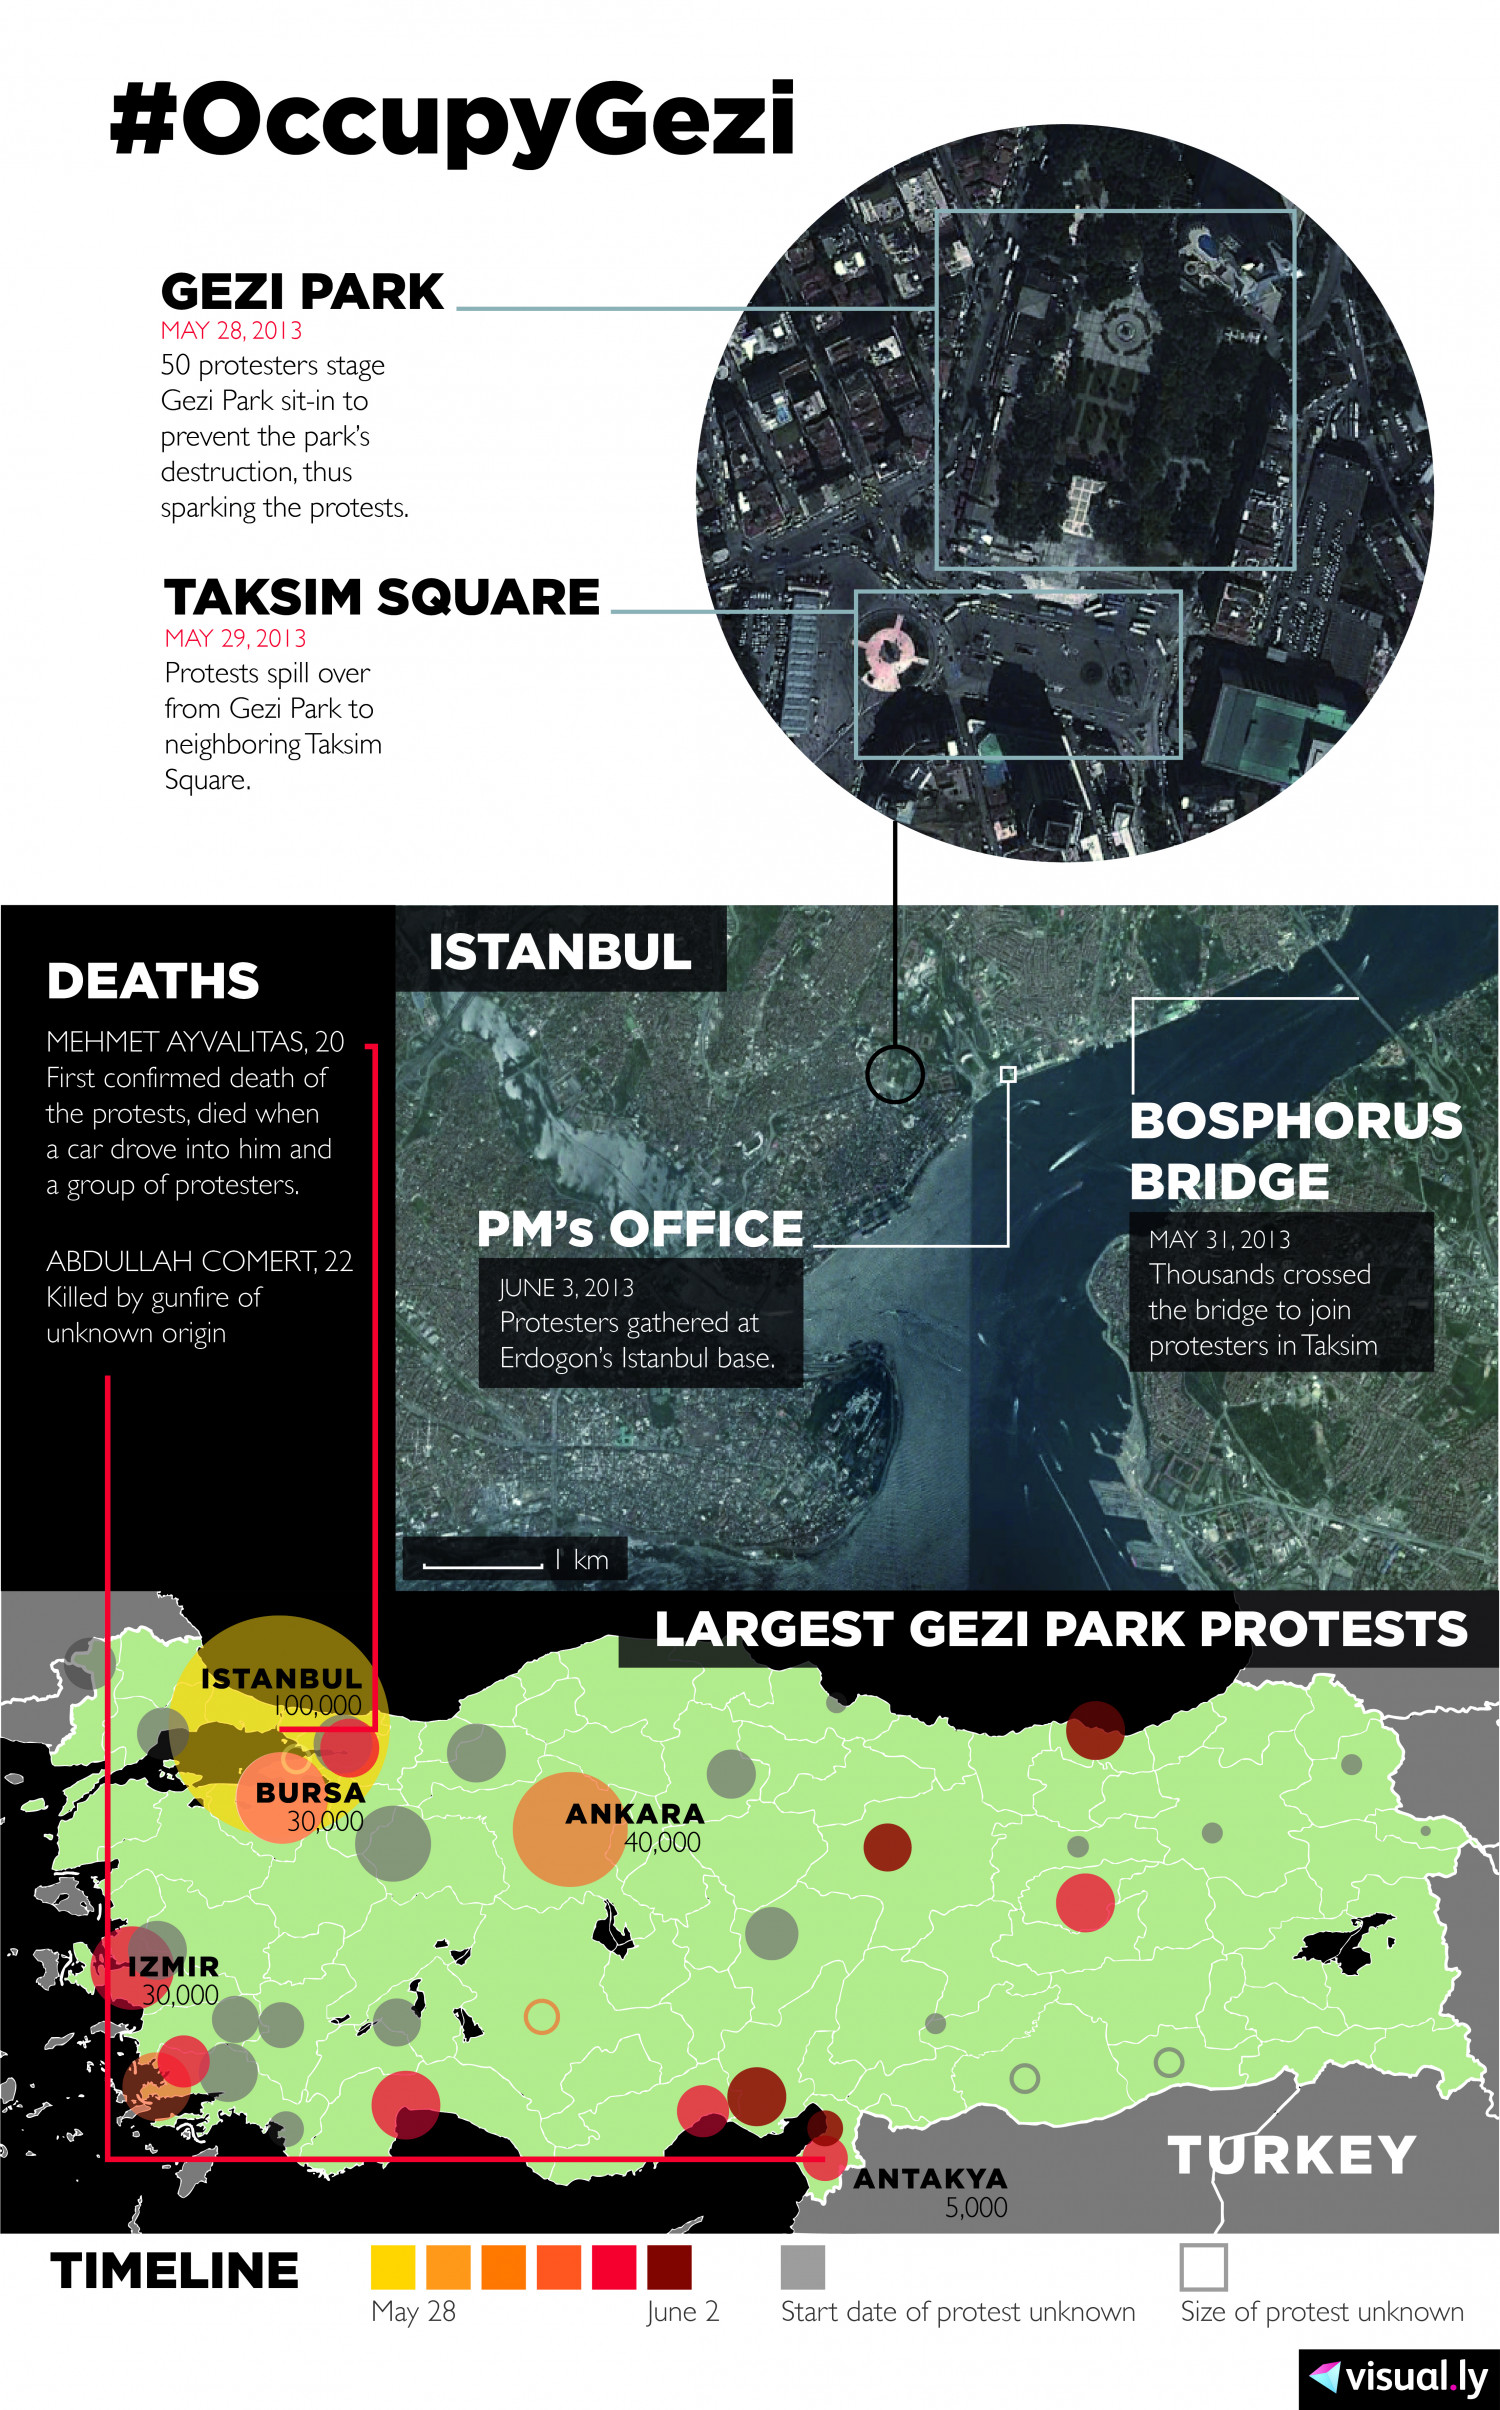 #OccupyGezi: Turkish Protests in 2013 Infographic